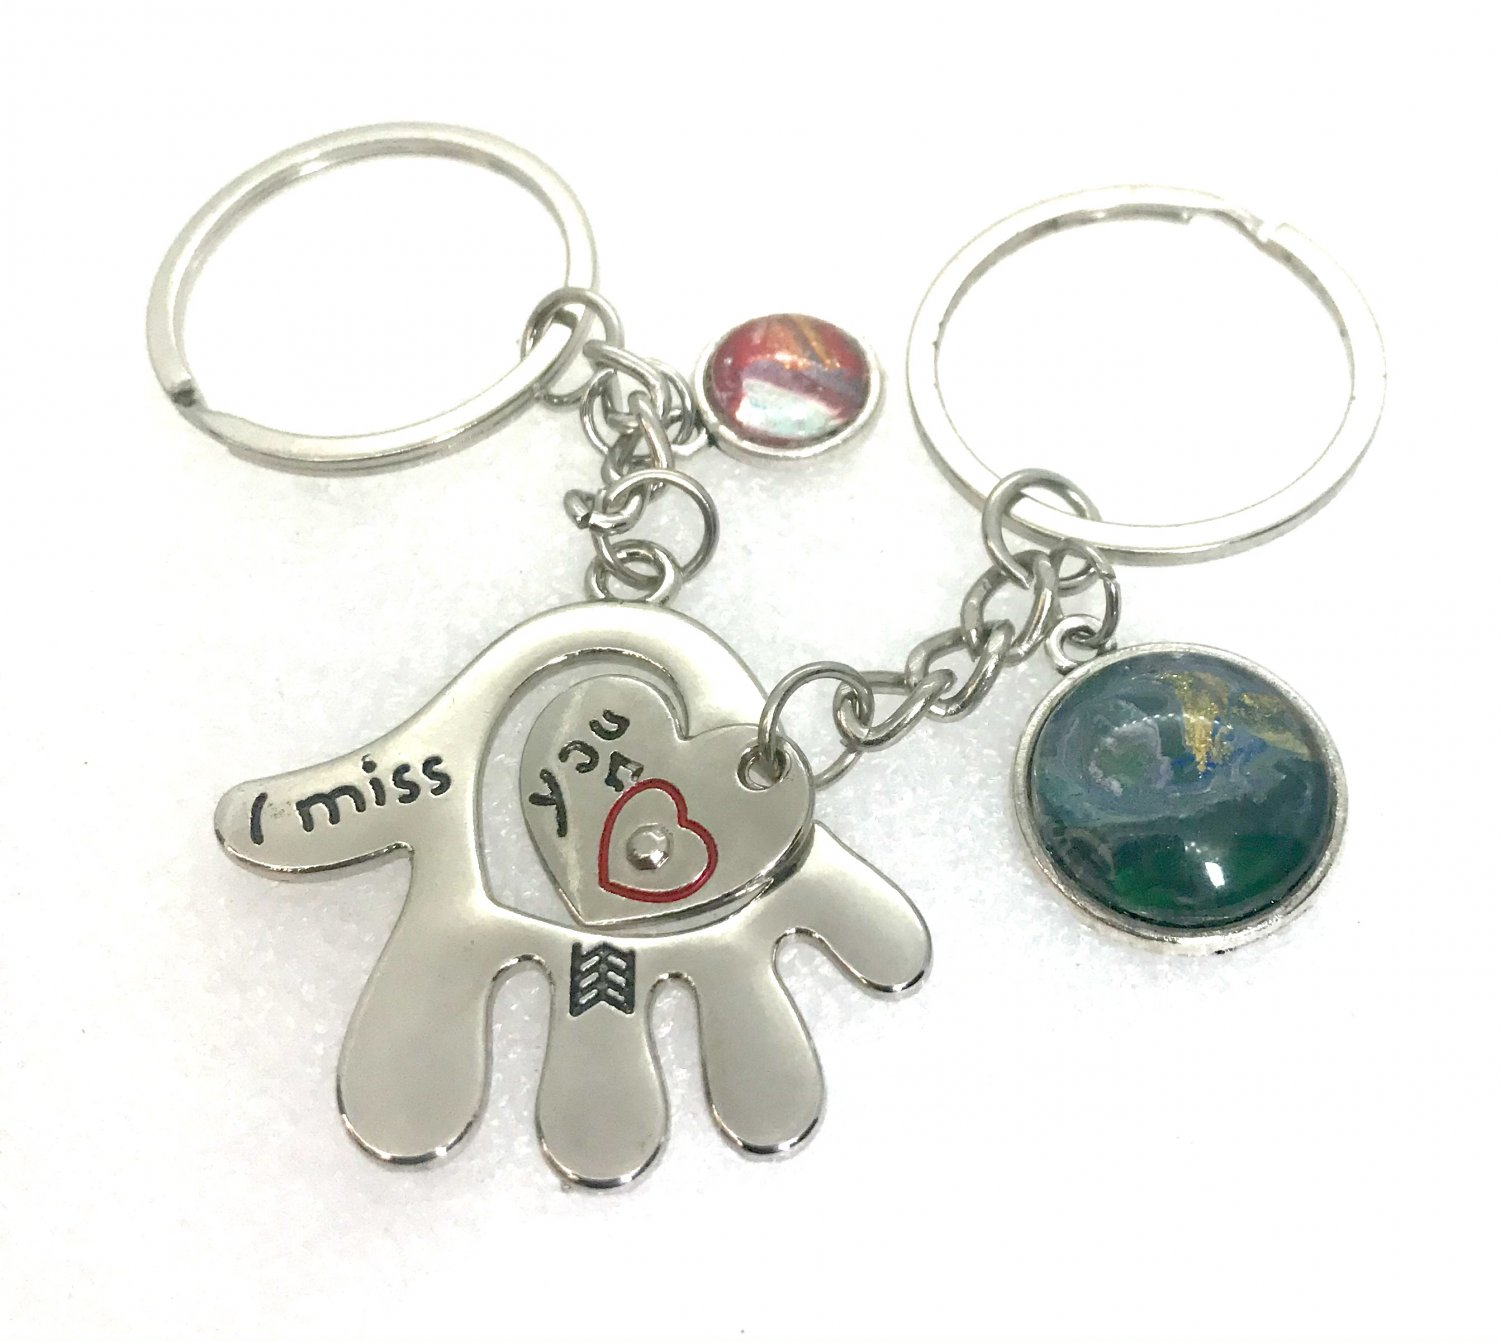 Handmade pair of Keychains I miss you with charms